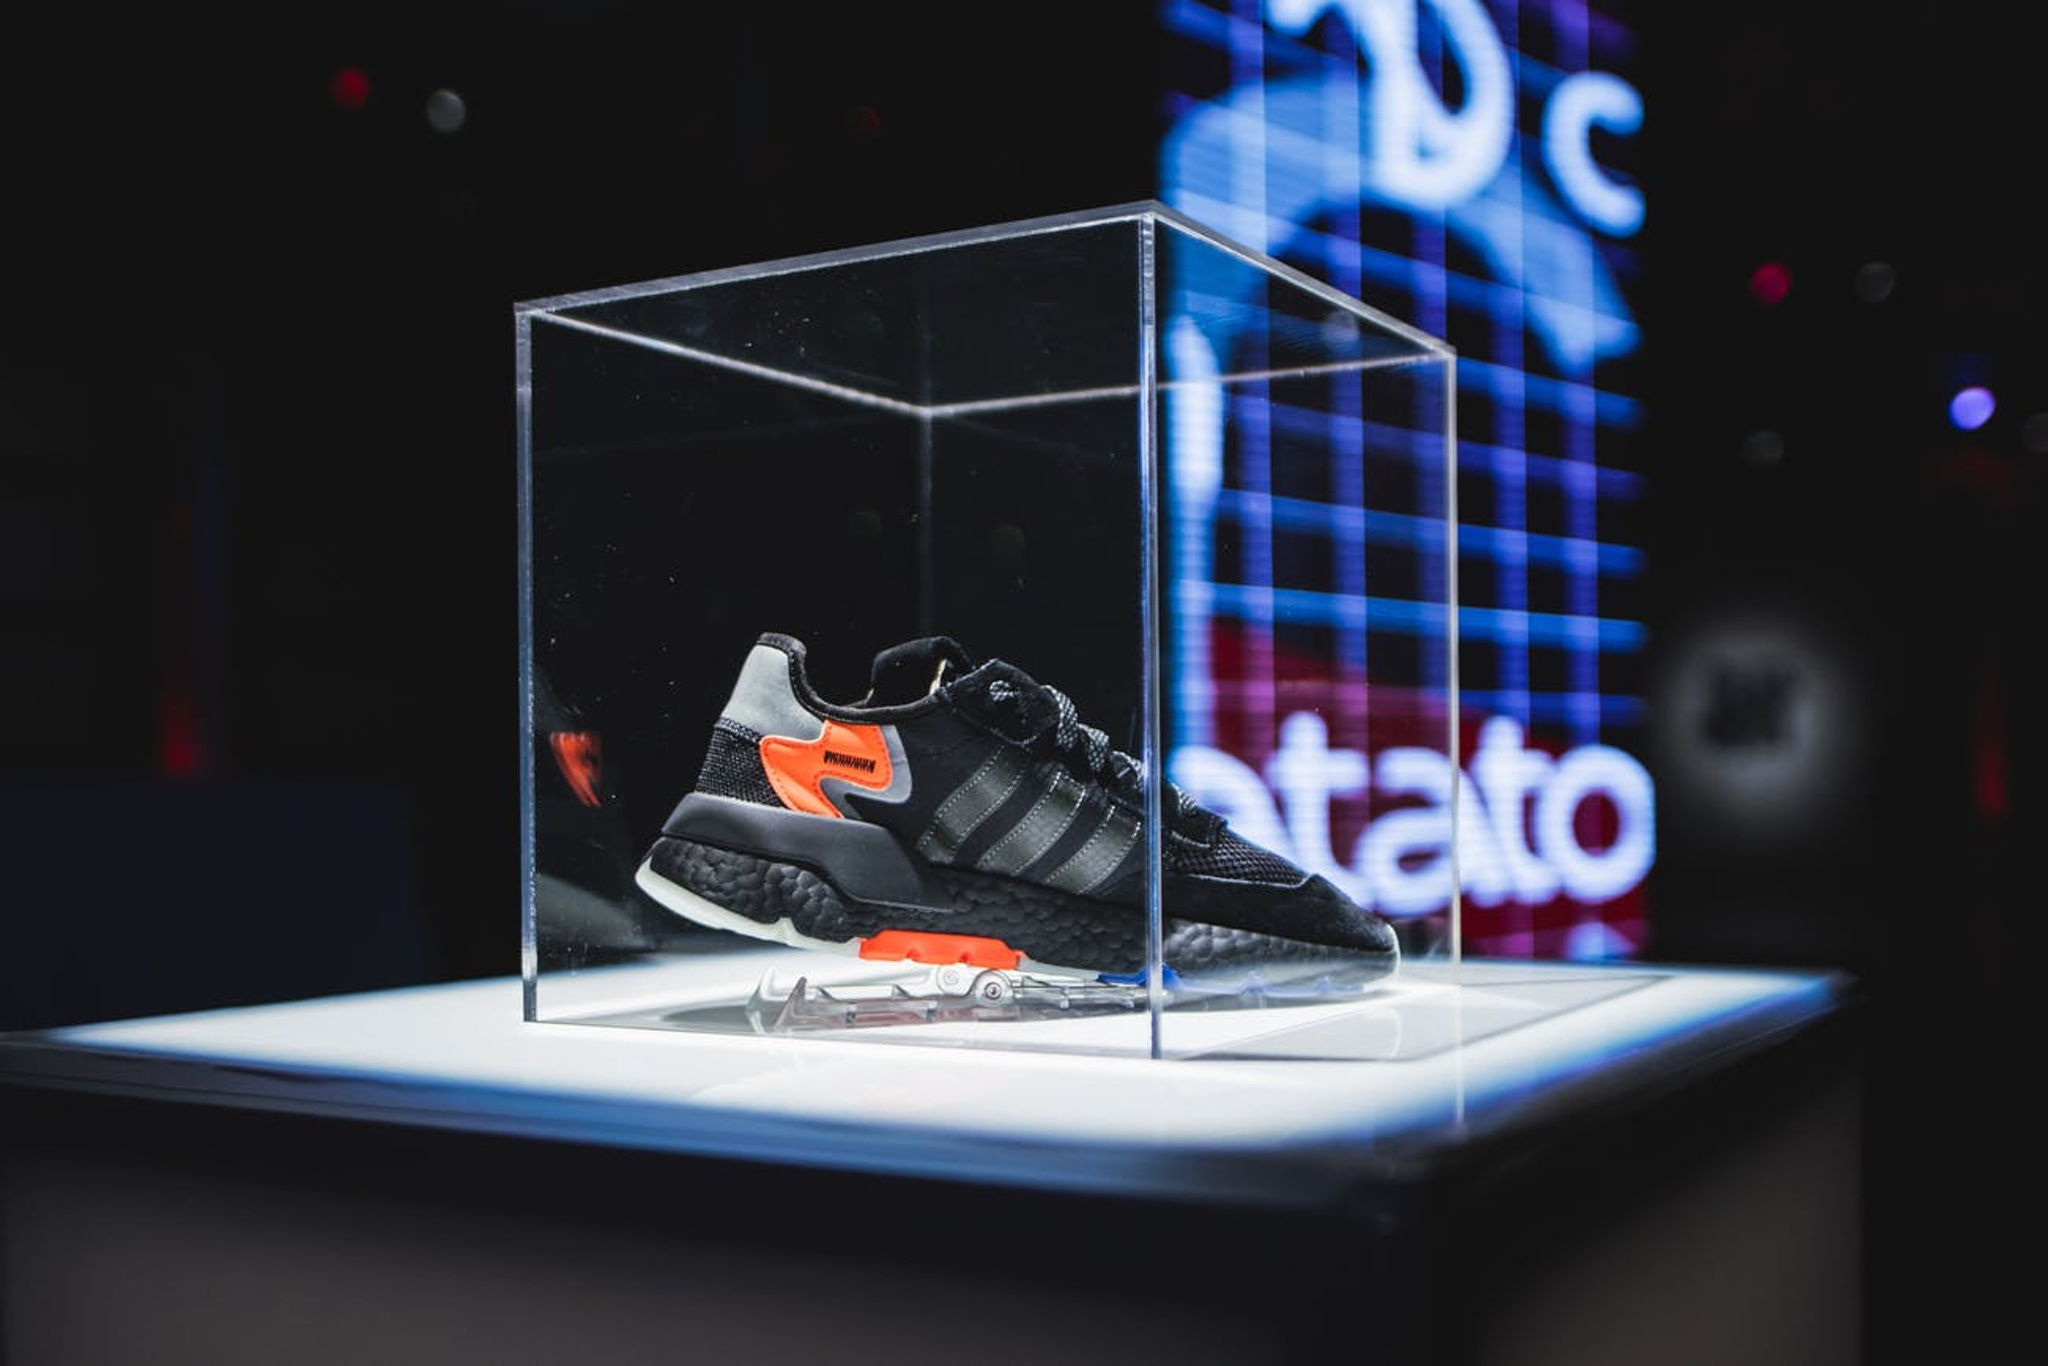 Adidas Night Jogger sneakers showcased at launch party in Chicago